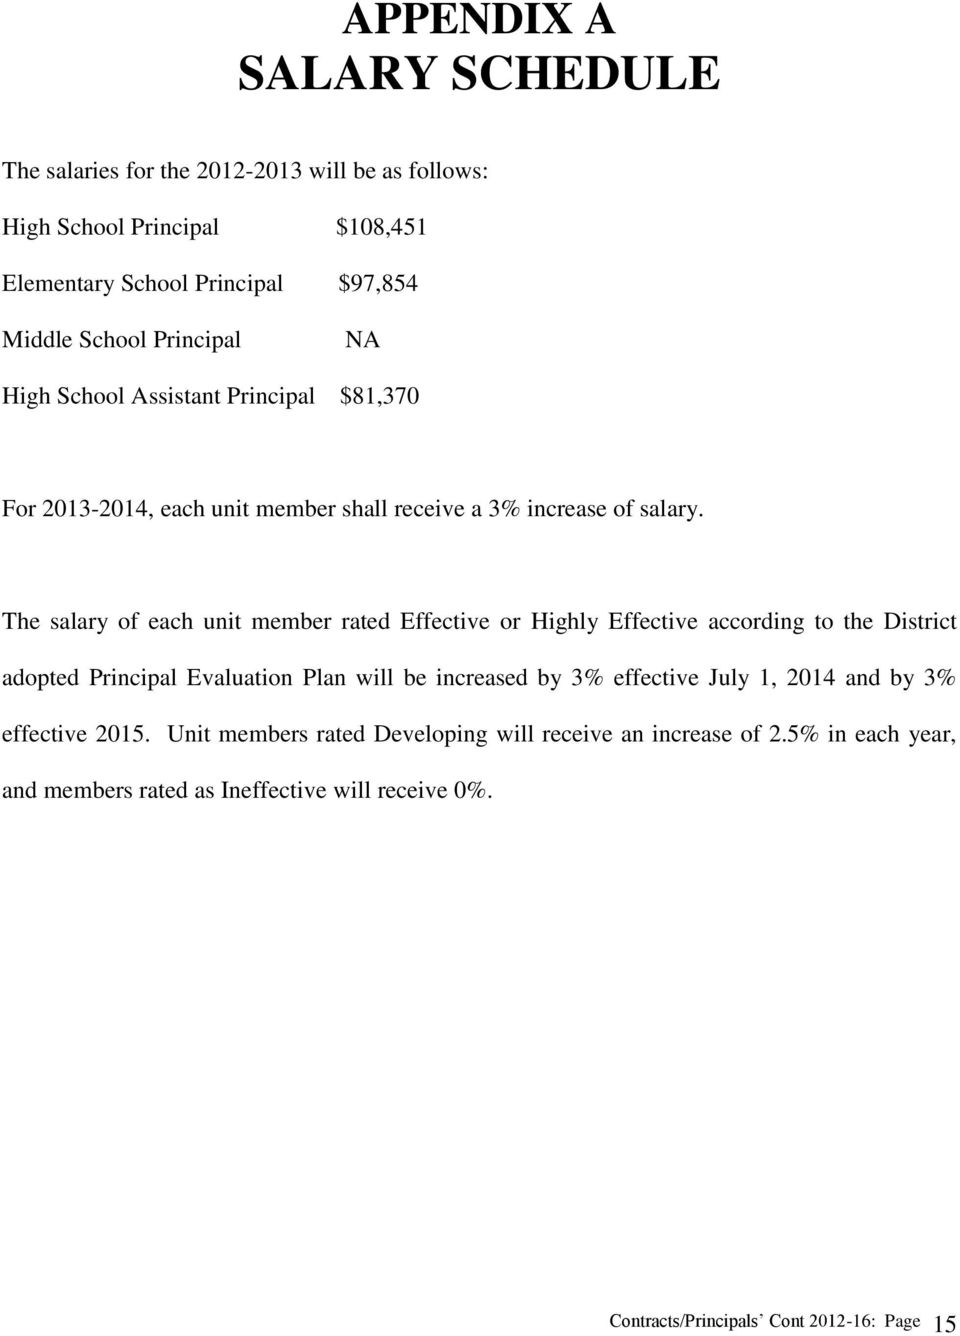 The salary of each unit member rated Effective or Highly Effective according to the District adopted Principal Evaluation Plan will be increased by 3% effective